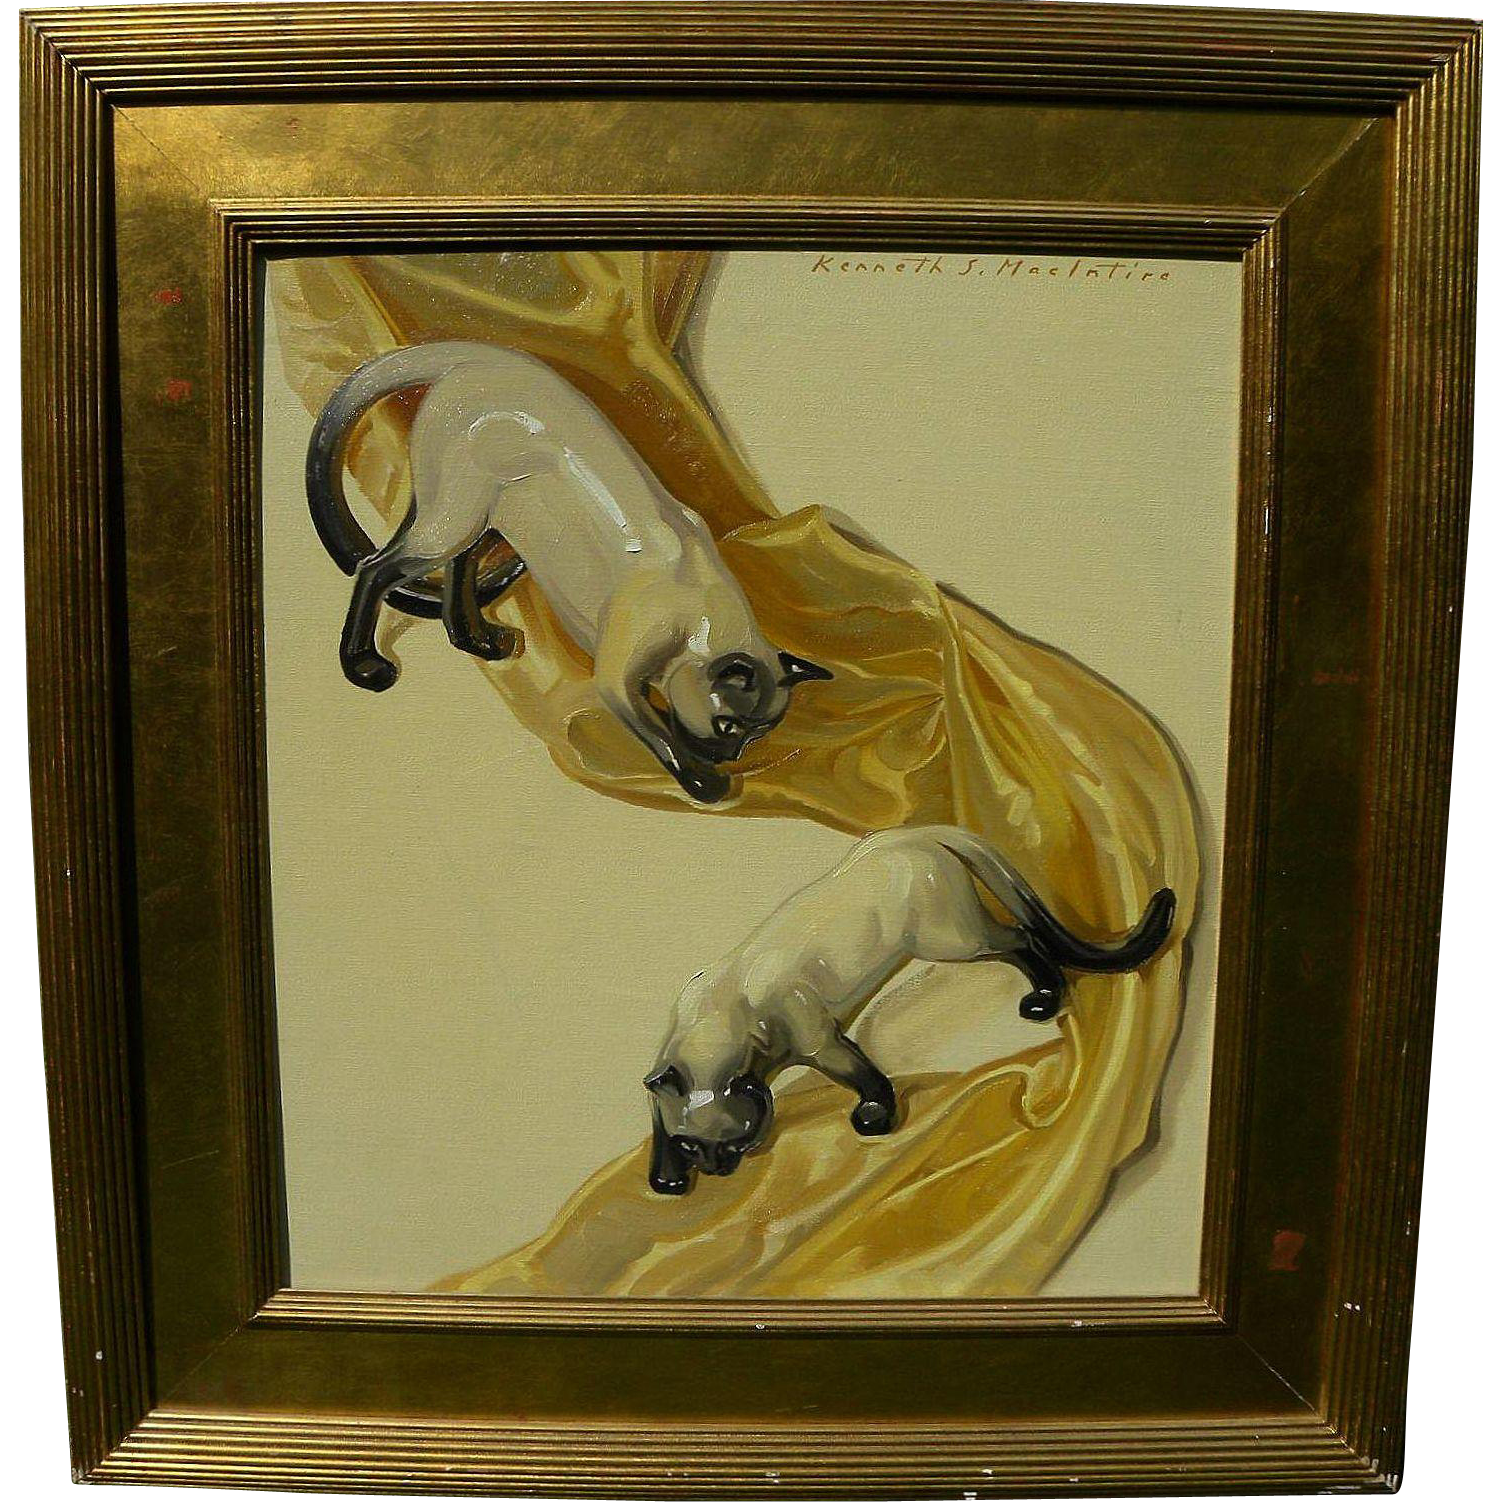 KENNETH STEVEN MACINTIRE (1891-1979) elegant highly decorative Art Deco inspired oil painting of Siamese cats by noted artist and illustrator